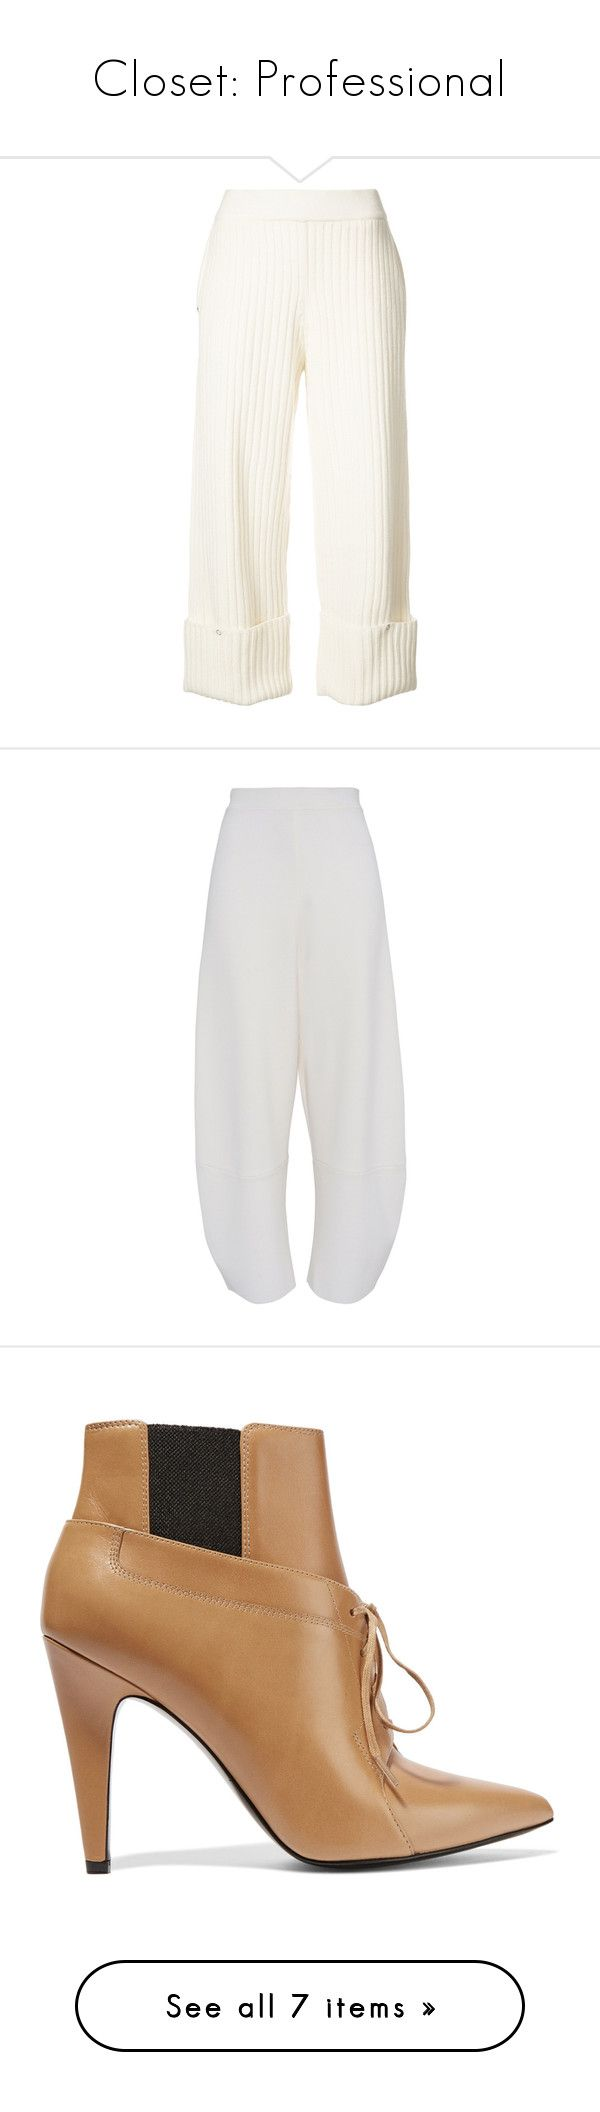 """""""Closet: Professional"""" by reesescup3000 ❤ liked on Polyvore featuring pants, capris, white, opening ceremony, cropped pants, snap pants, white crop pants, white cropped trousers, high waisted wide leg pants and wide leg trousers"""